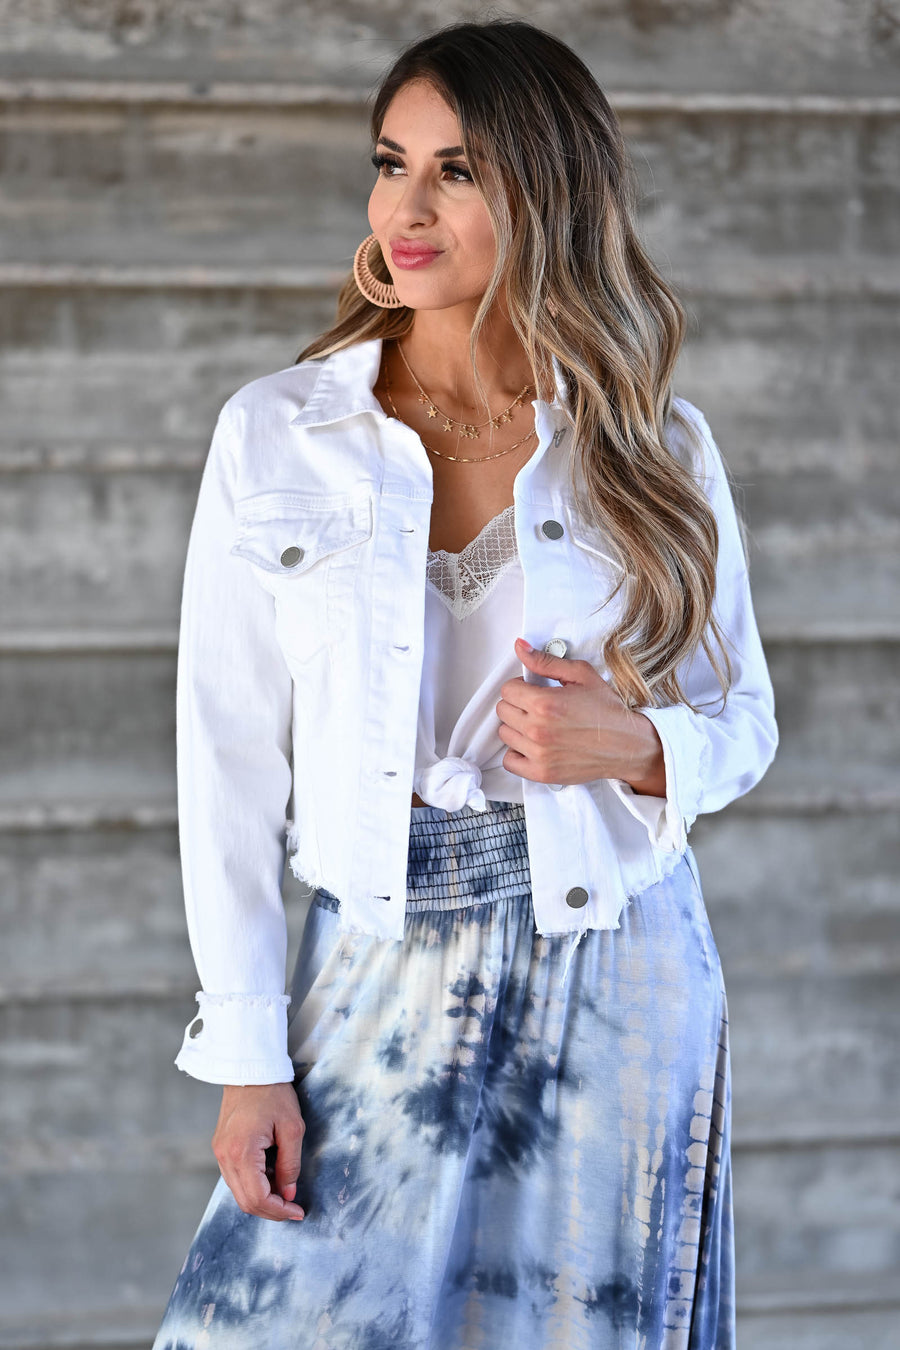 Own It Denim Jacket W/ Raw Hem - White Women's white denim jacket featuring basic collar, long sleeves, raw hem design, button closure at front and cuffs, and chest pockets with flap button closure closet candy front